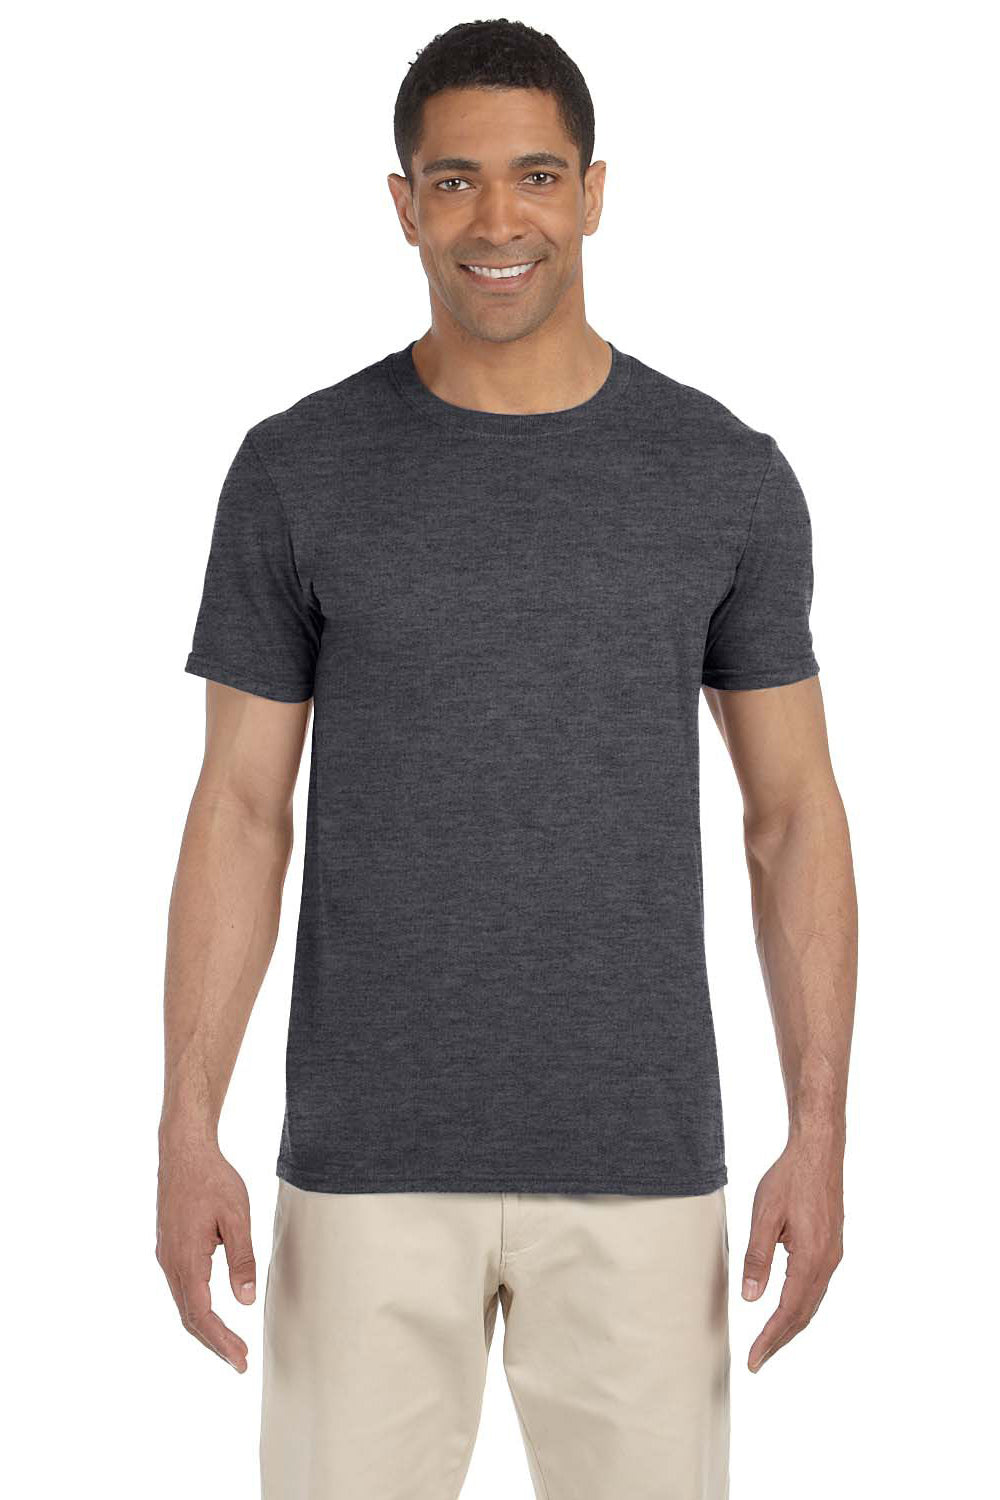 Gildan G640 Mens Softstyle Short Sleeve Crewneck T-Shirt Heather Dark Grey Front